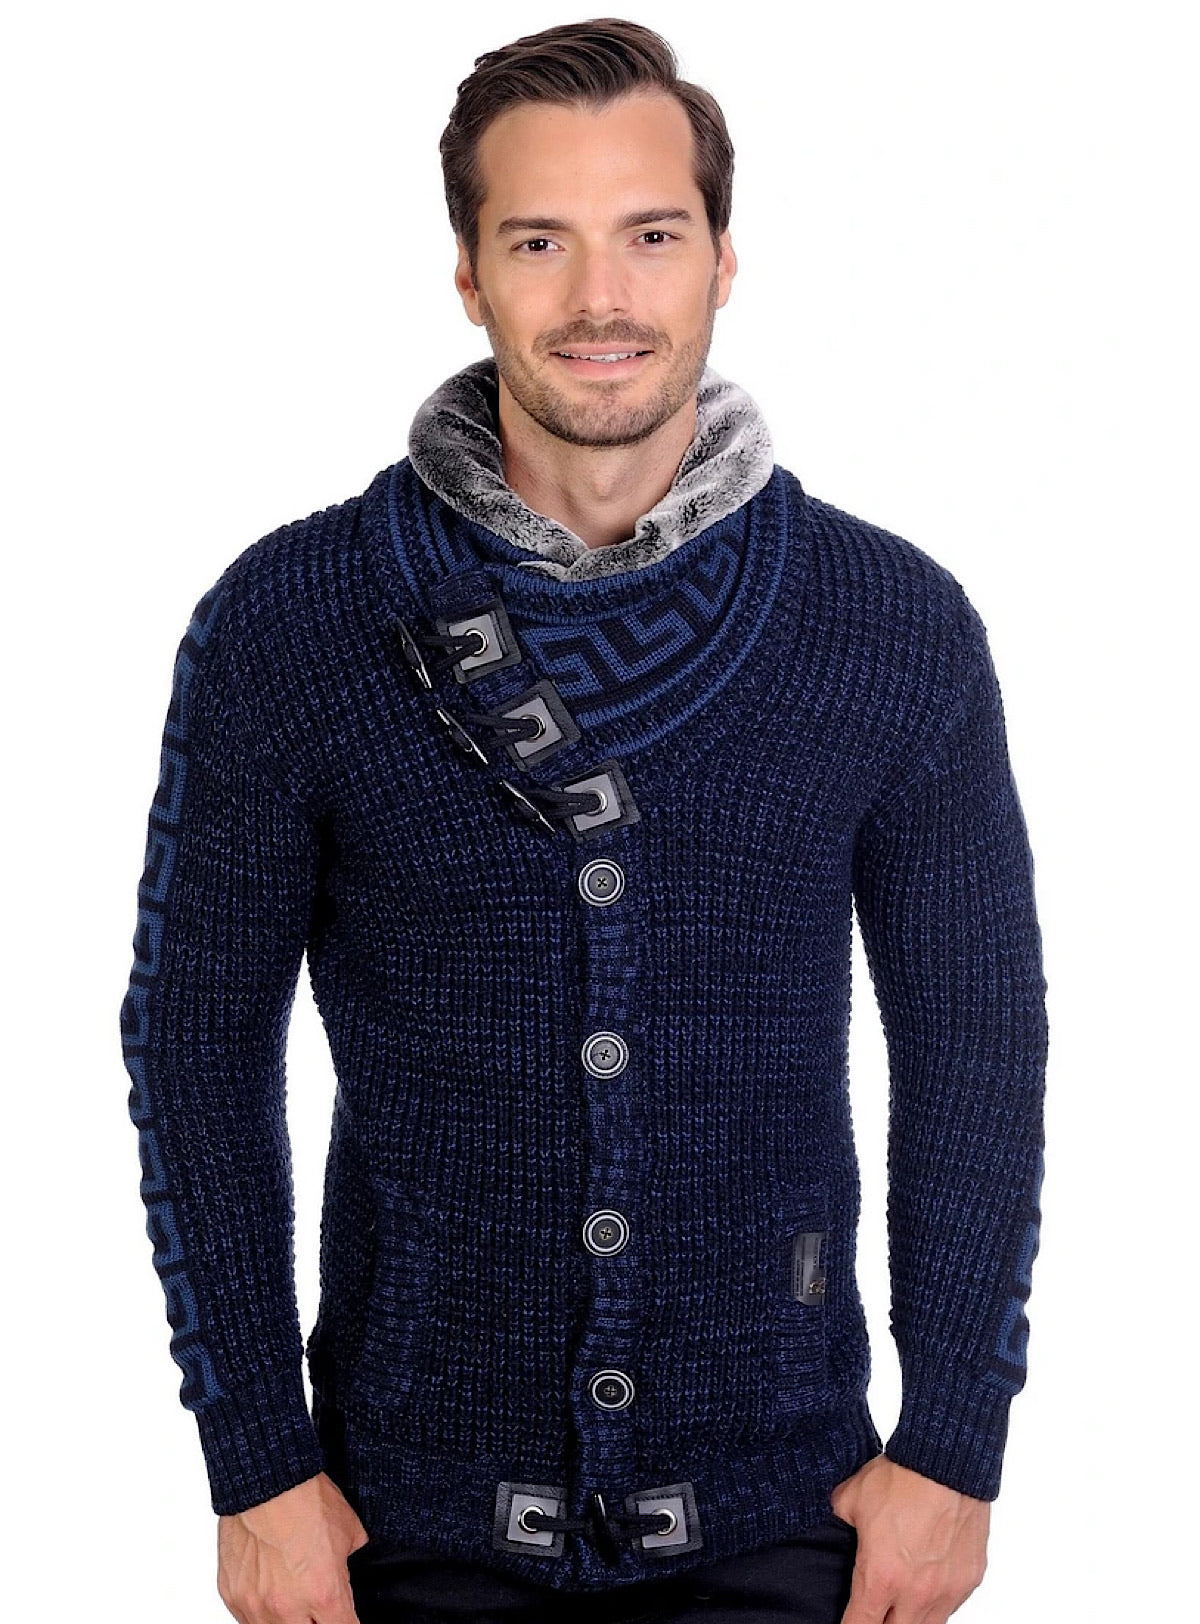 LCR Sweater - Slim Knit - Navy-Blue - 6430